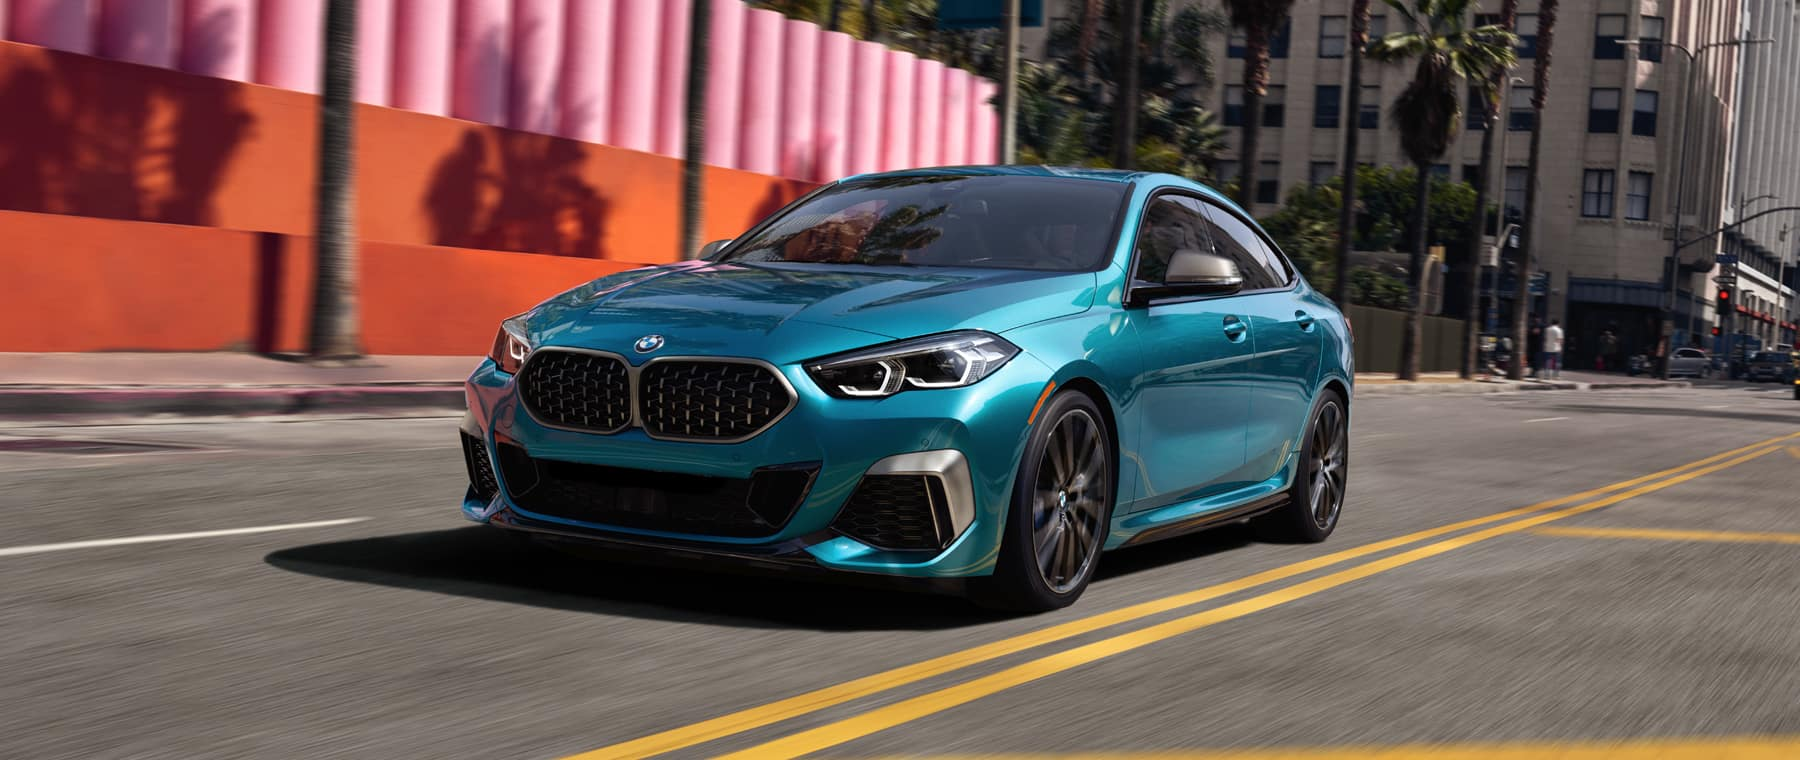 BMW Of North Haven Homepage Image